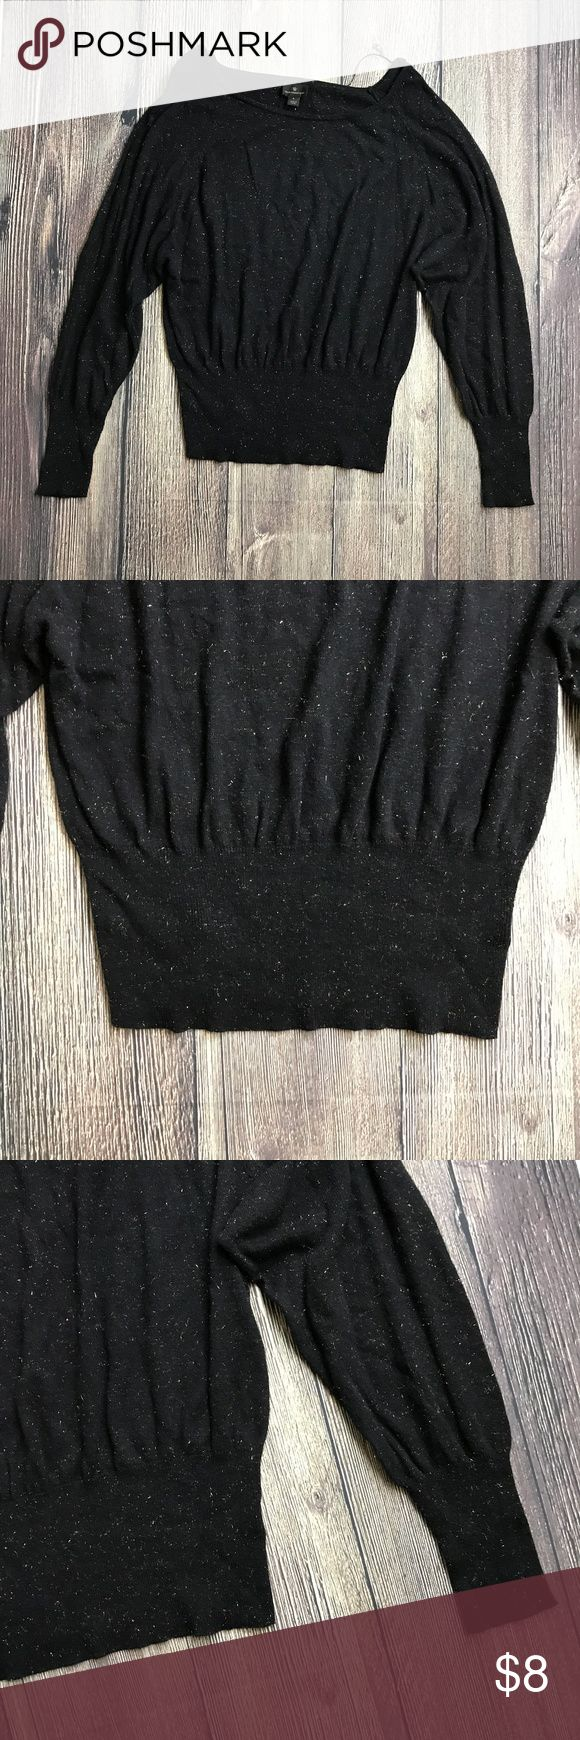 Worthington Sz Large Black & Gold Sparkle Blouse Materials: 51% Cotton, 41% Rayon, 7% Nylon, 1% Other Fibers  Measurements (approximate) in inches. Items are measured laying flat & not stretched.  Length: 23 Underarm to underarm: 19 Worthington Tops Blouses